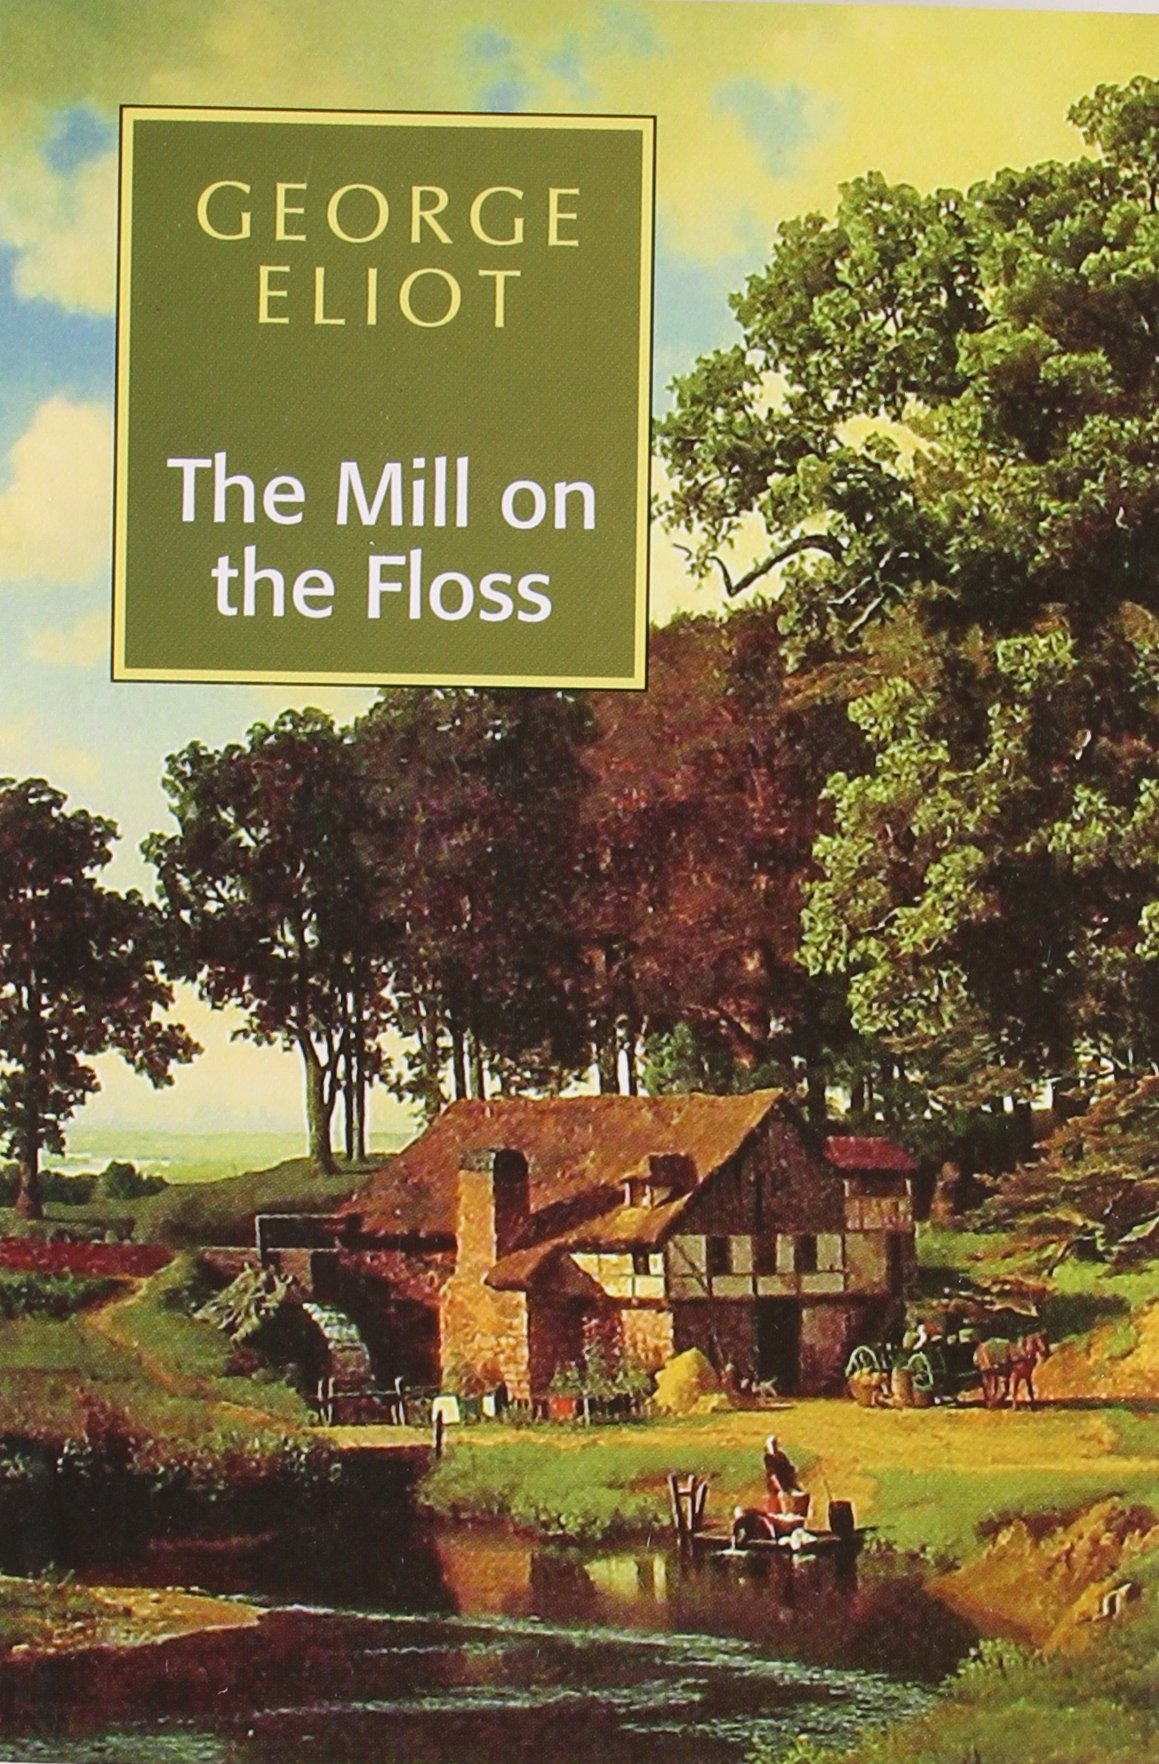 Image result for the mill on the floss book cover